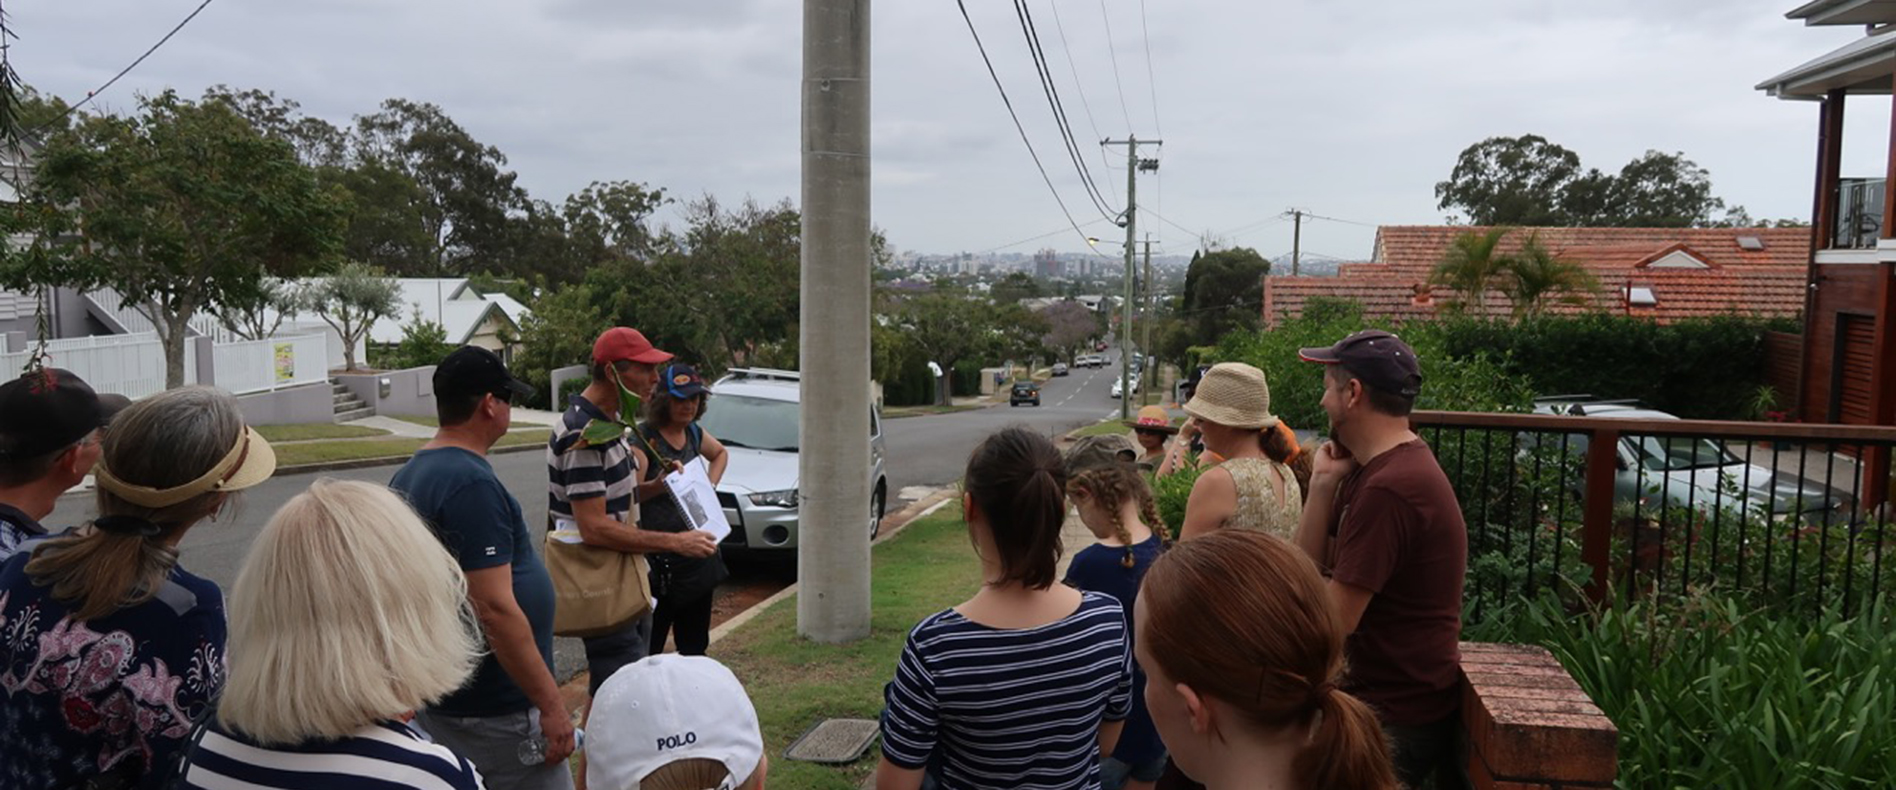 Annerley-Stephens History Group Inc walking tour